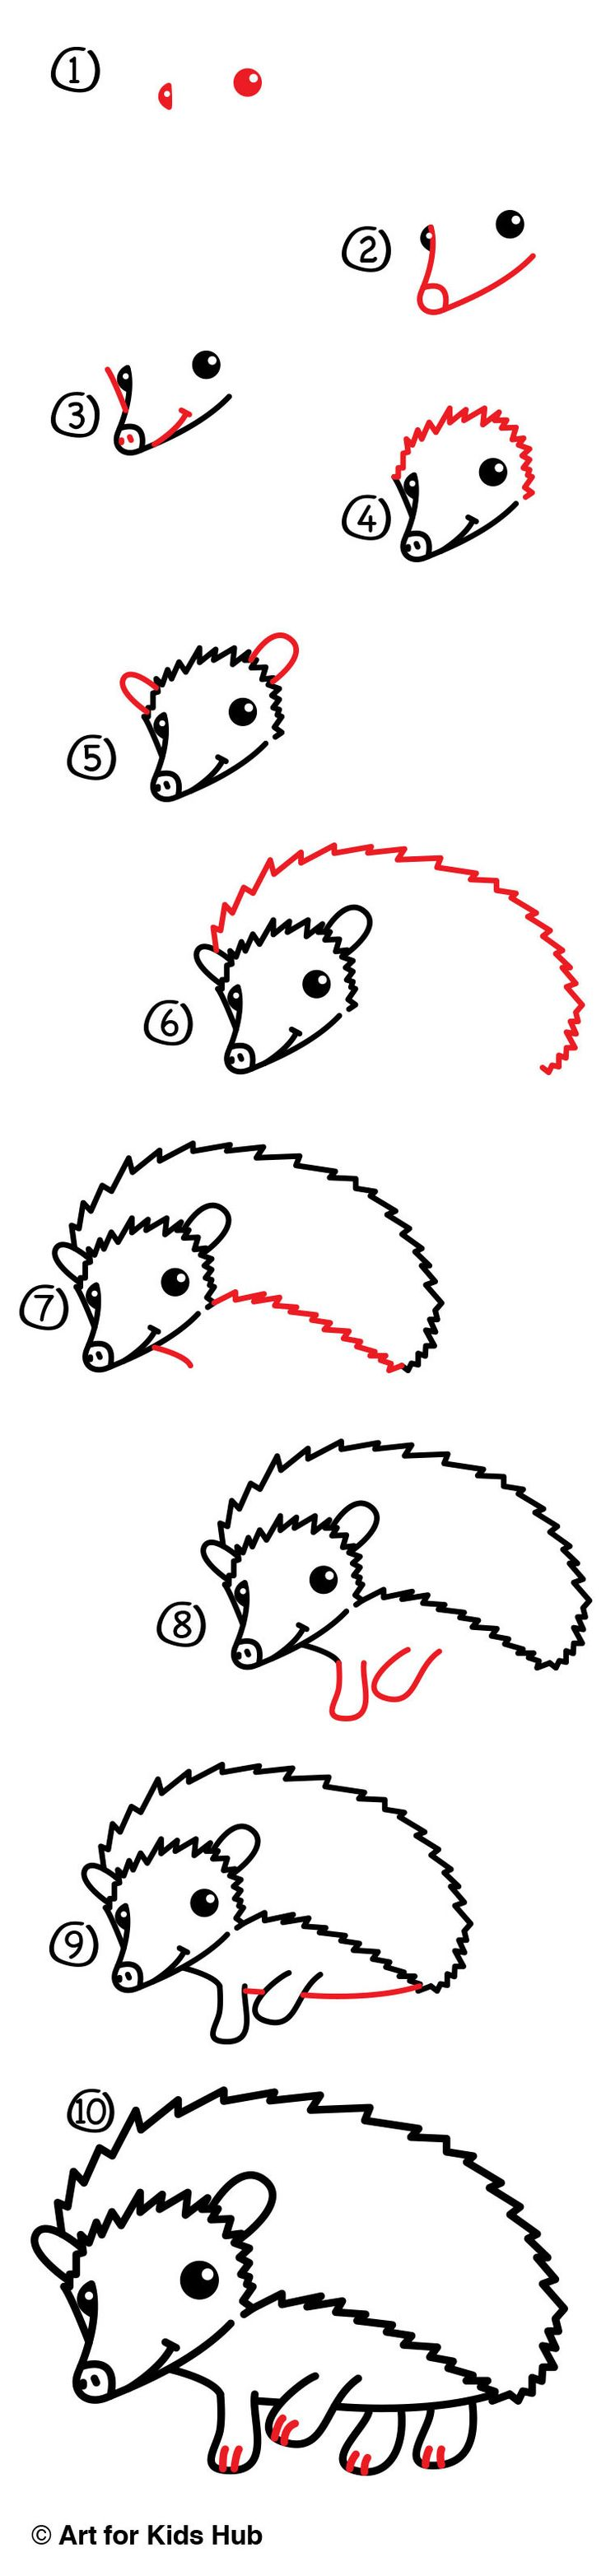 Follow along with us and learn how to draw a hedgehog. We use super simple steps made just for kids!